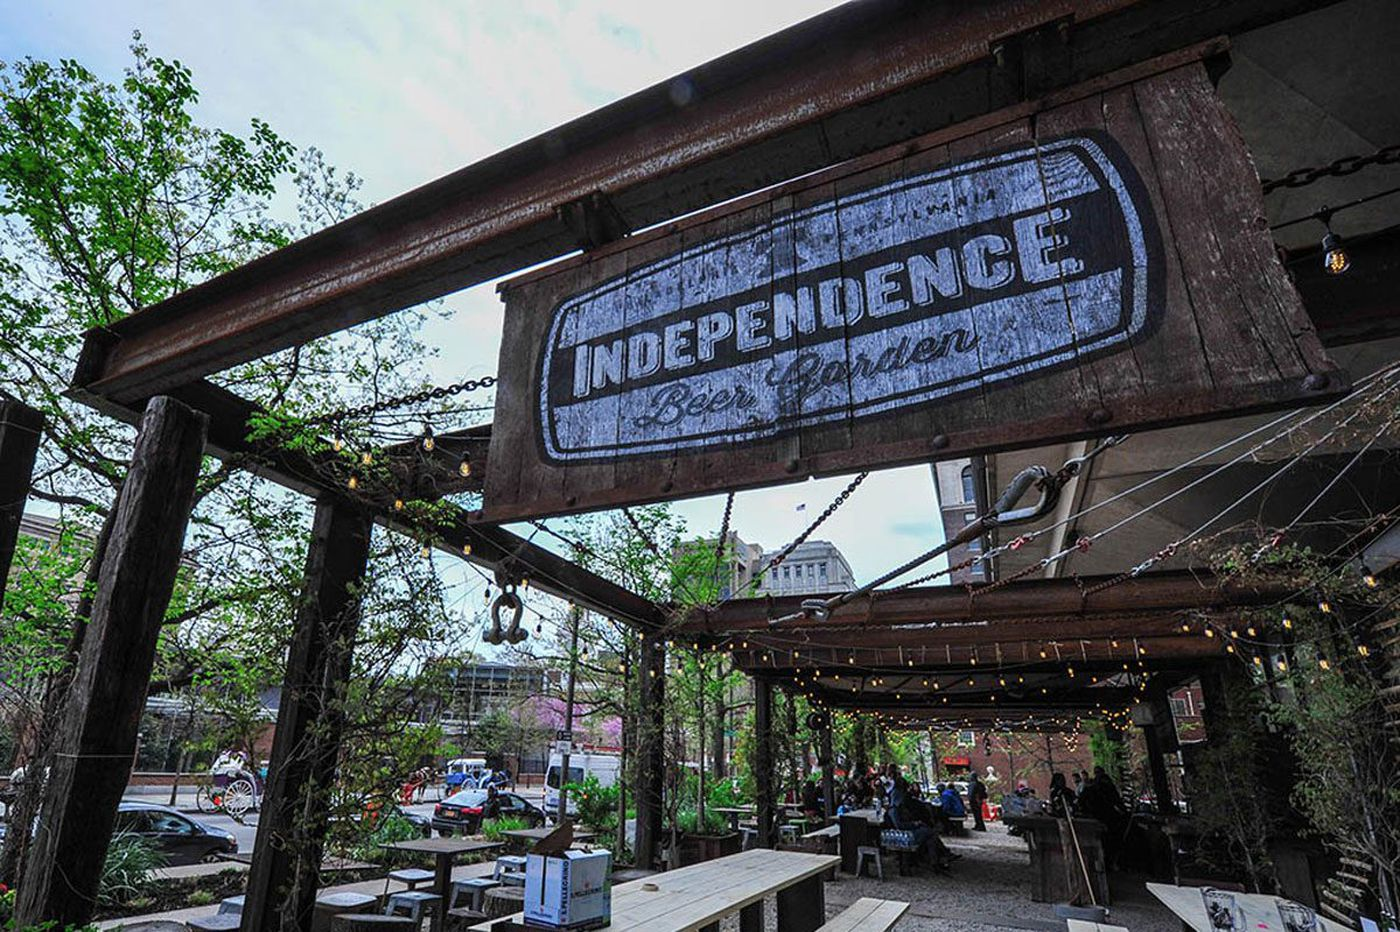 Independence Beer Garden opens, Clover Market, and other great happenings, April 20-27